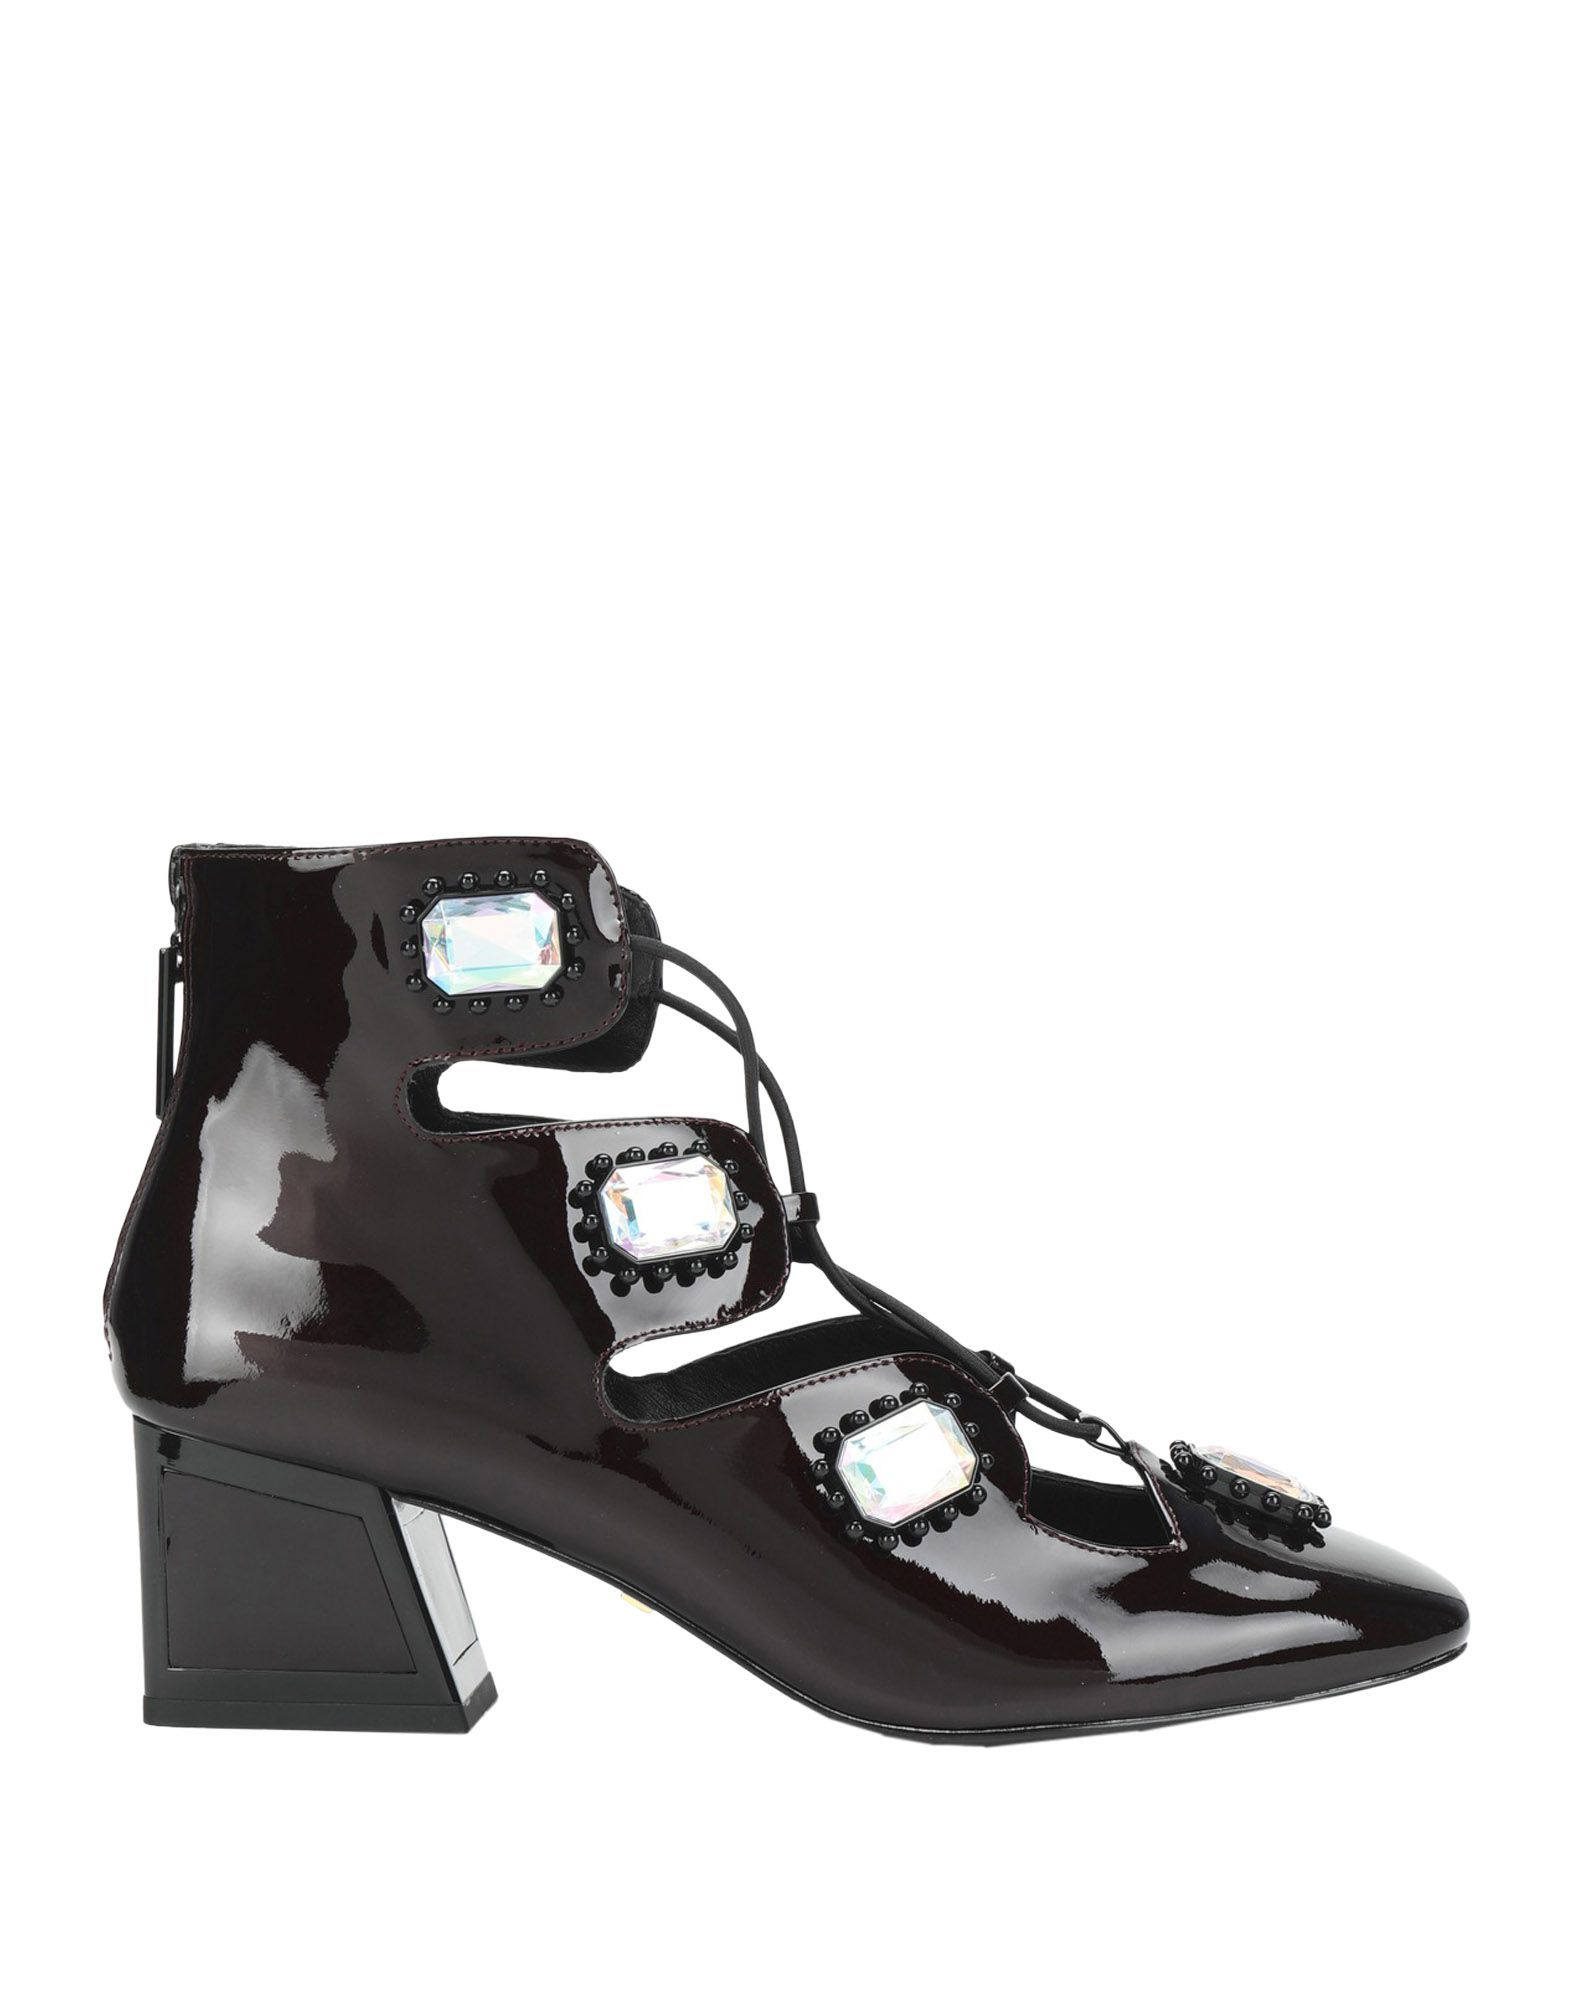 Kat Maconie Felicity Felicity Felicity - Ankle Boot - Women Kat Maconie Ankle Boots online on  Canada - 11567176MQ 95a73c